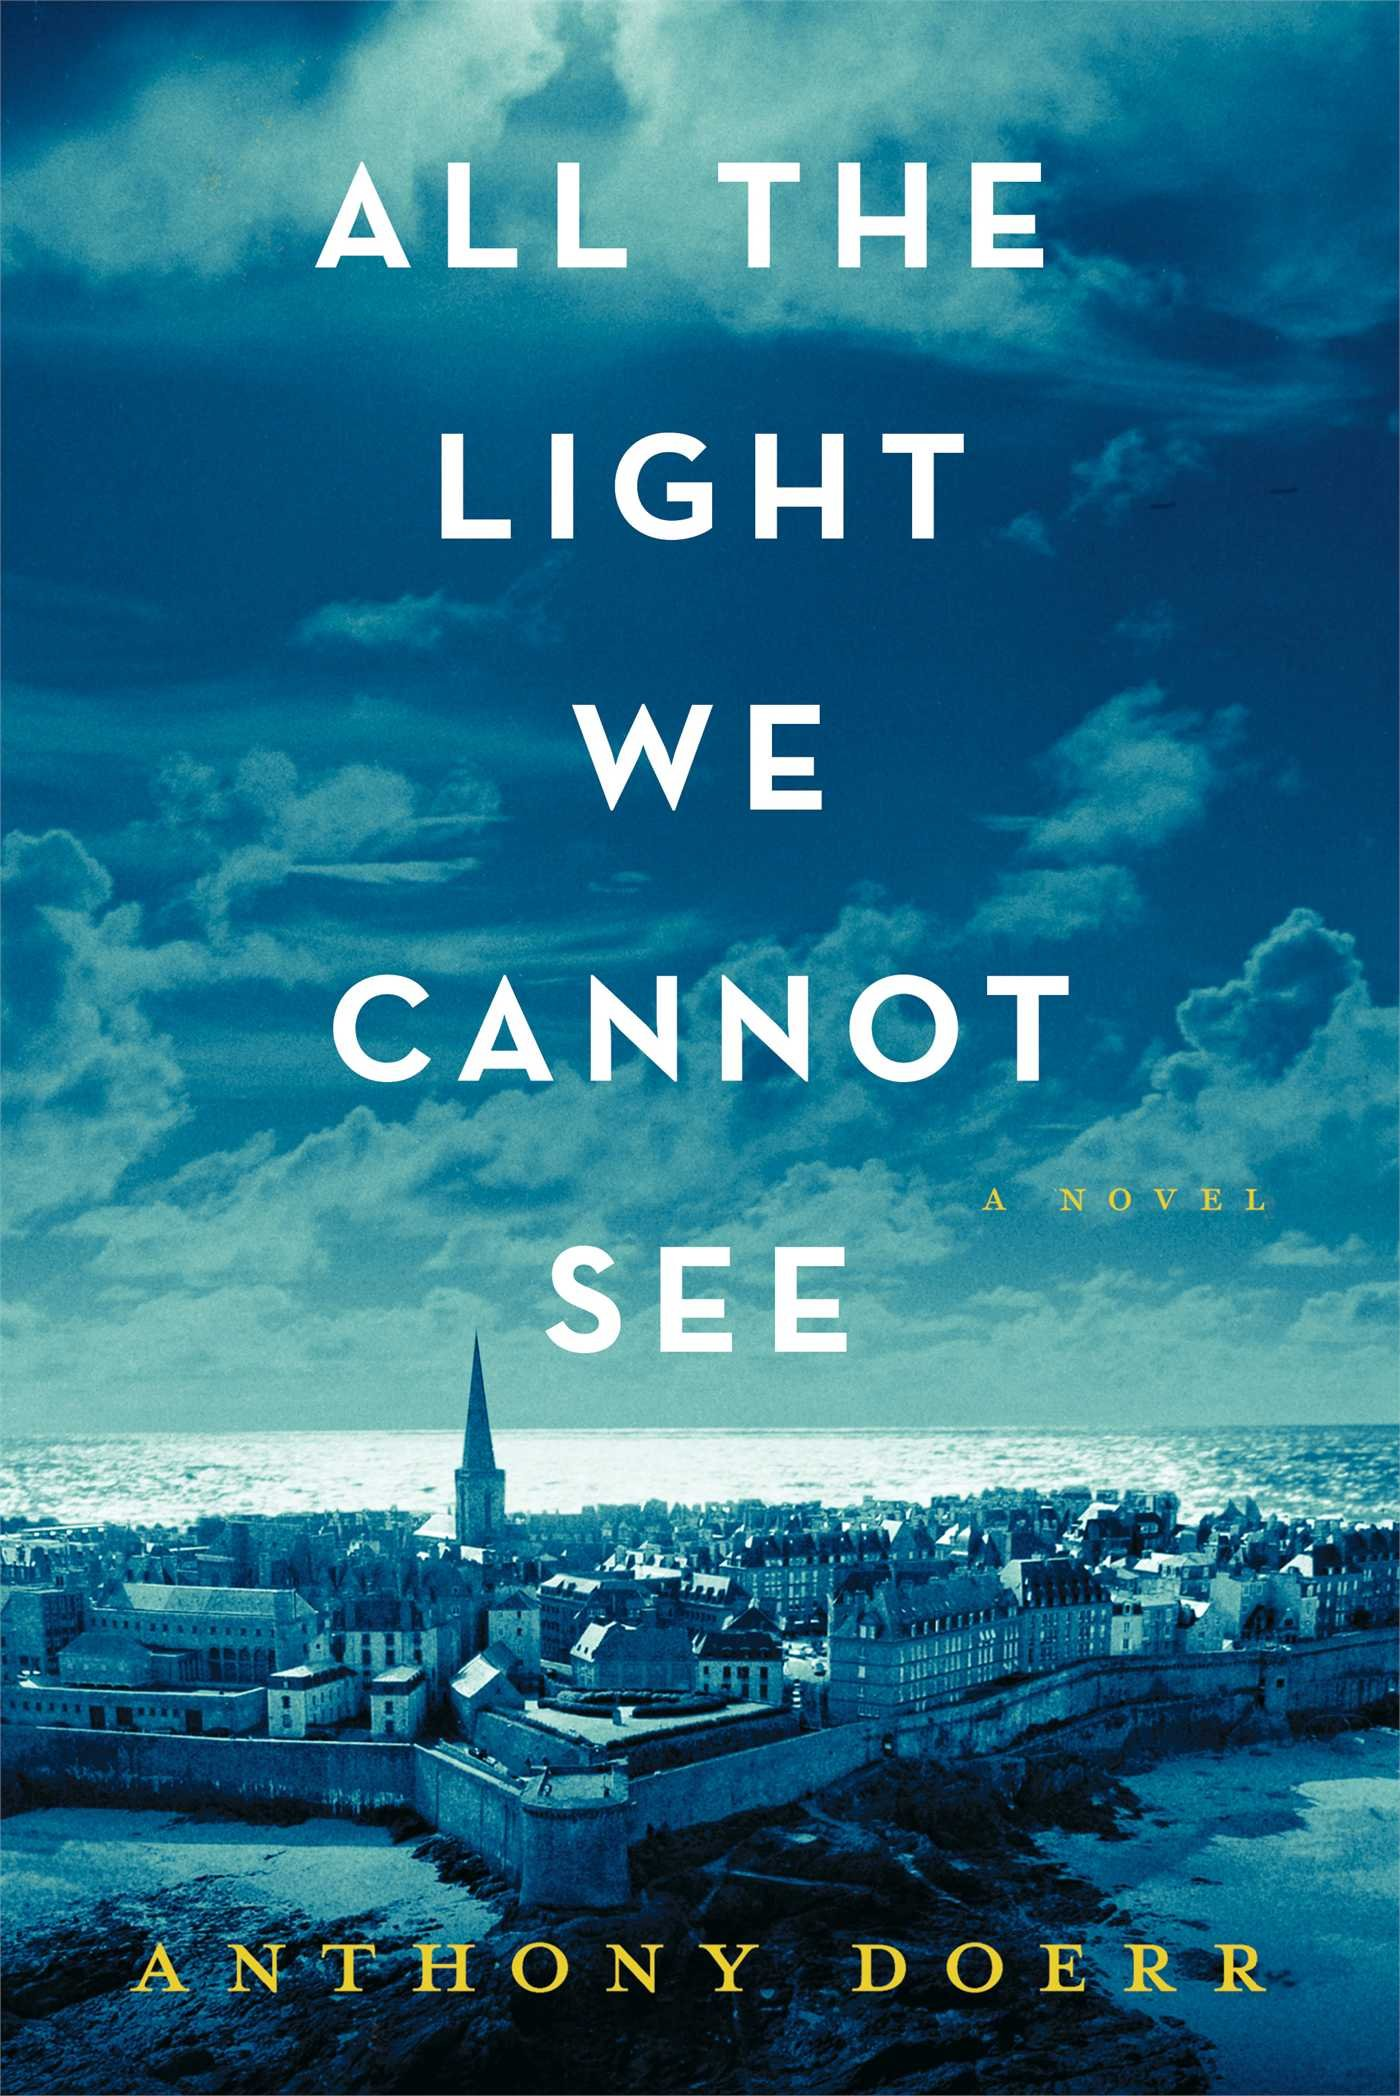 Book Cover Image All the Light We Cannot See Houston Public Media